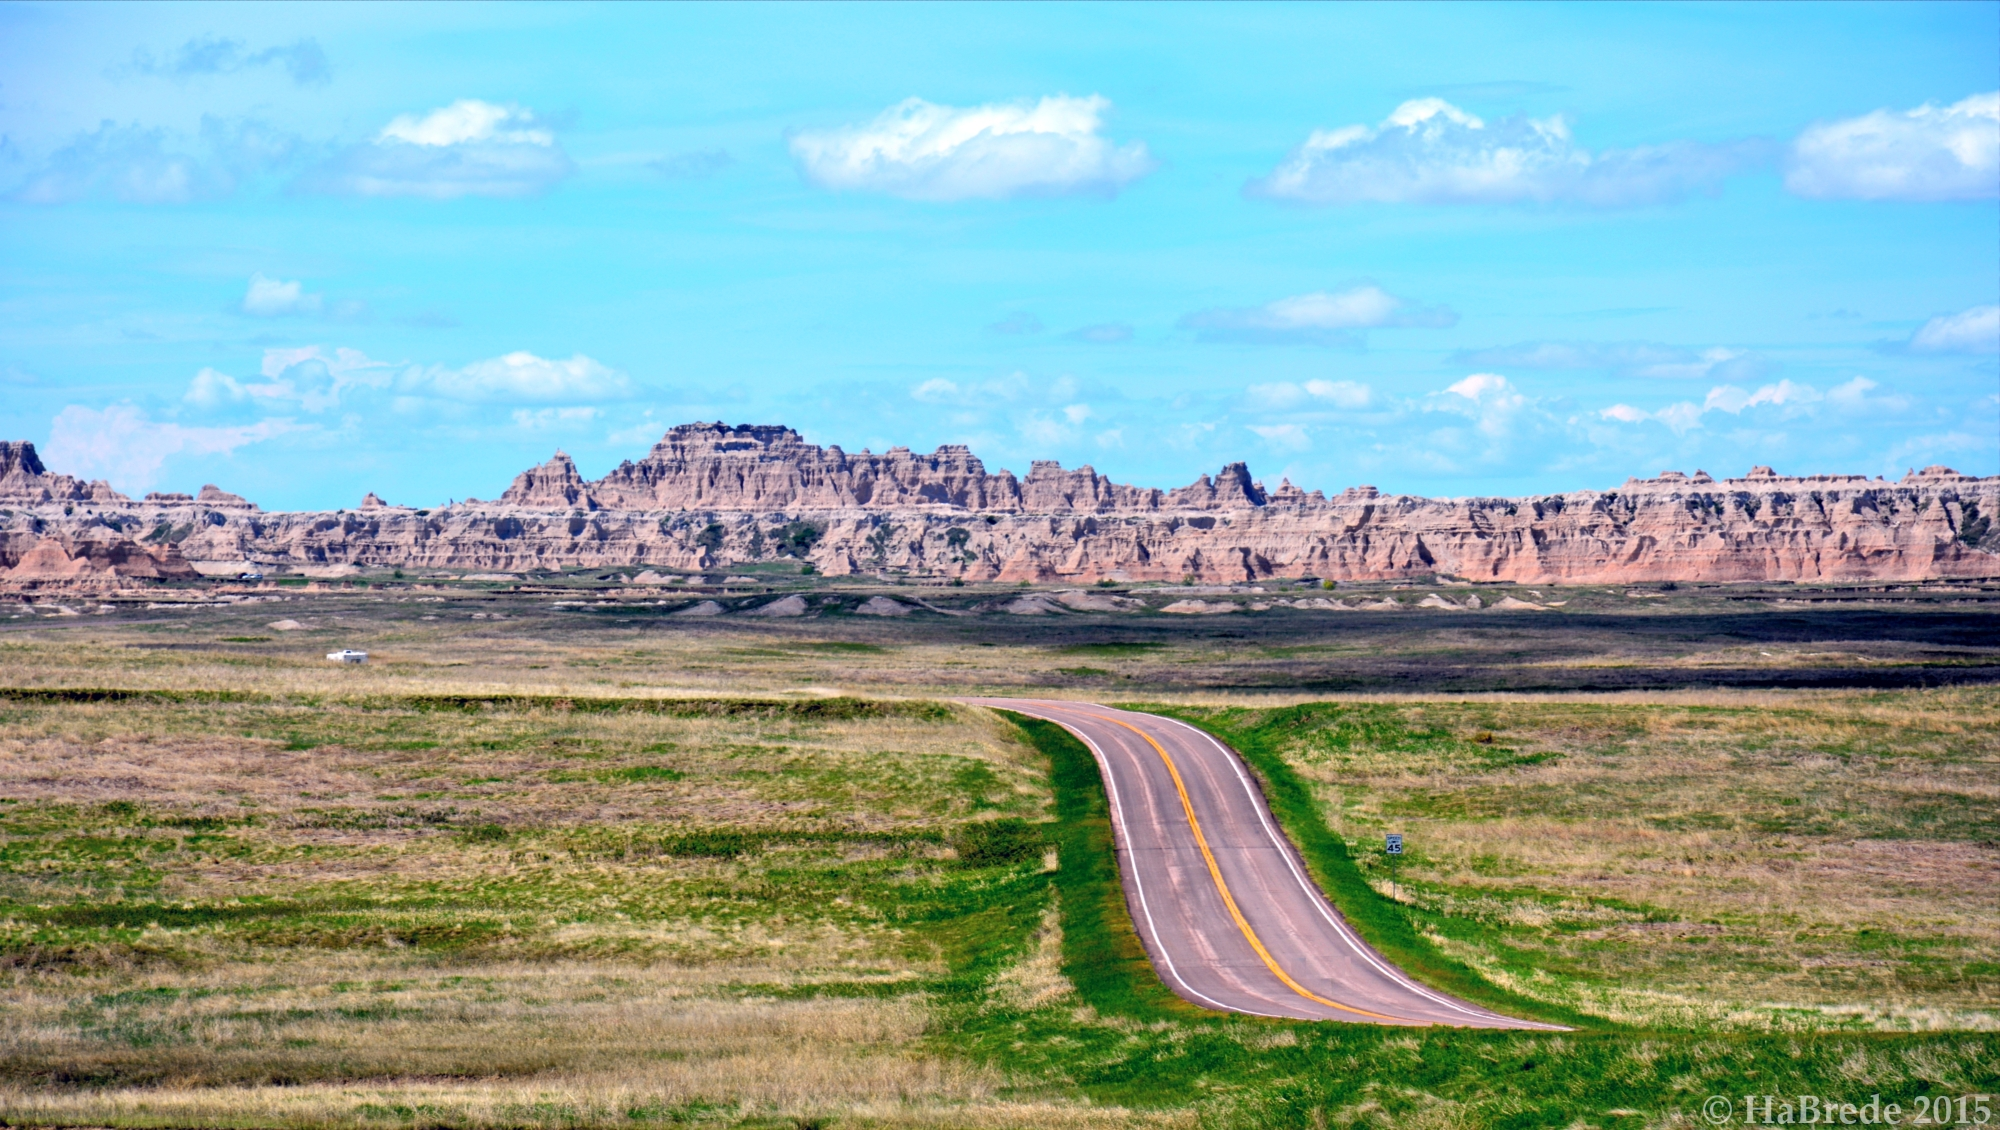 On the way to the Badlands, USA